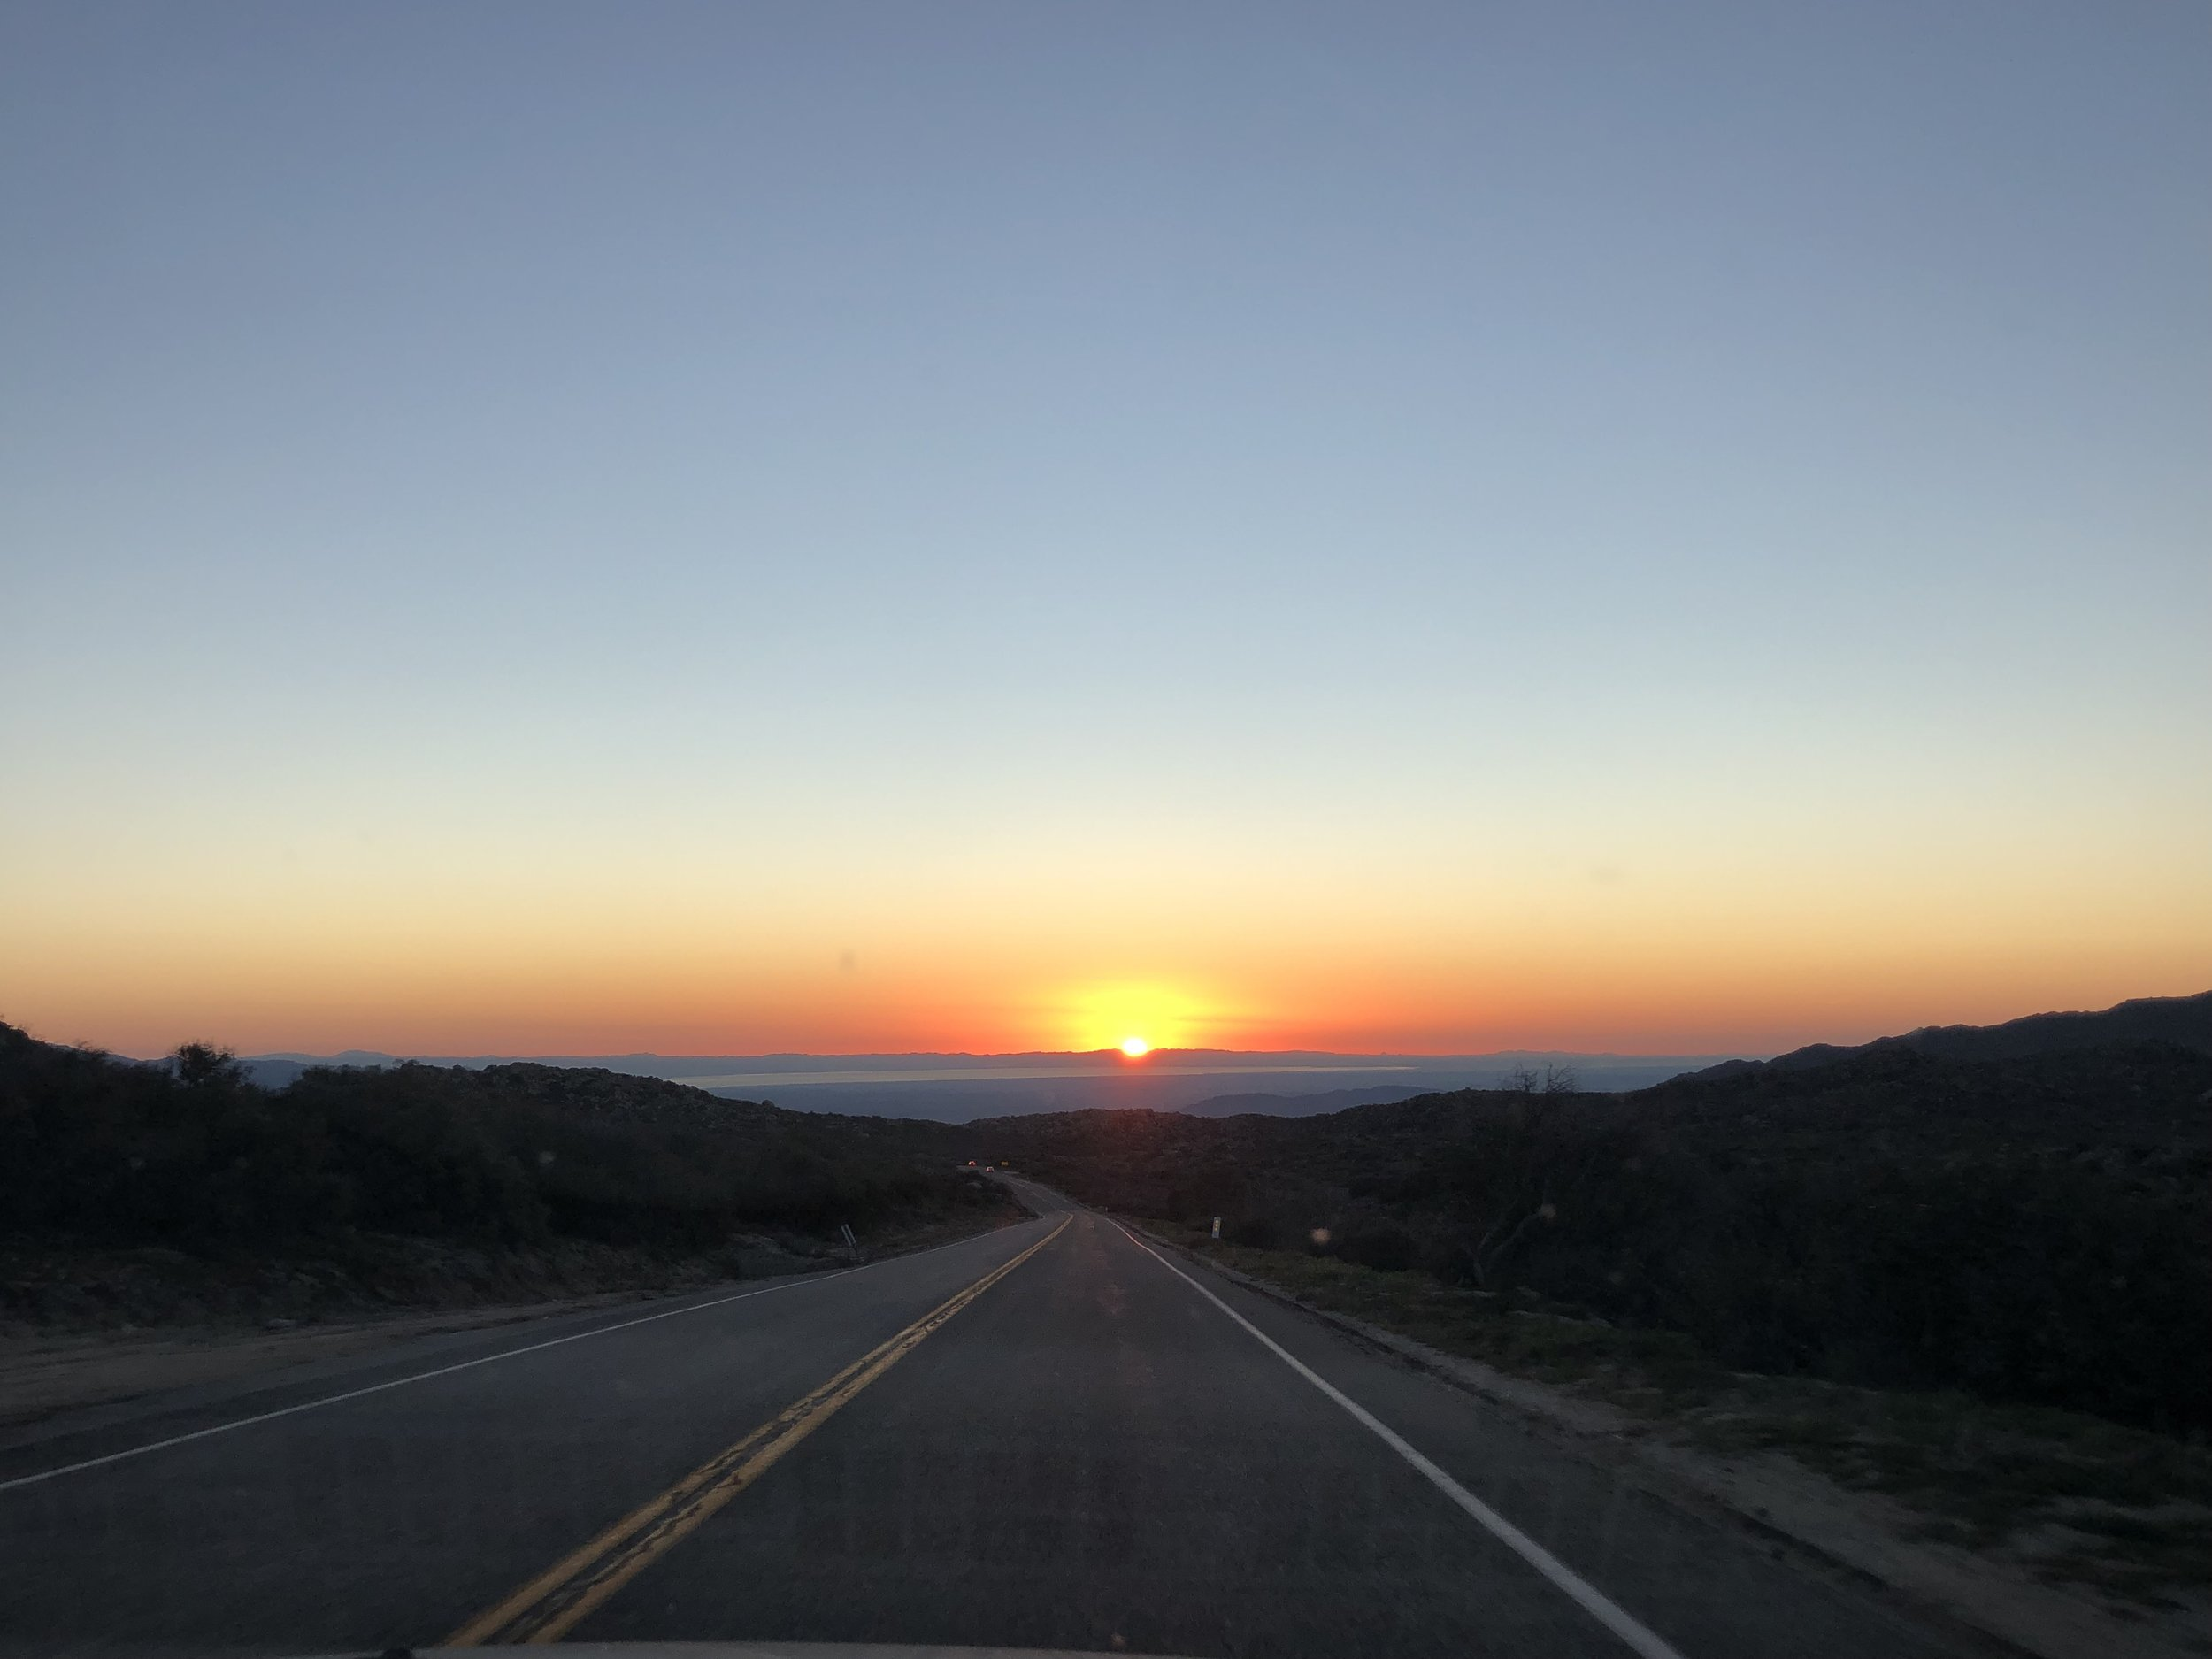 Sunrise on the highway heading to the super bloom. 2019.